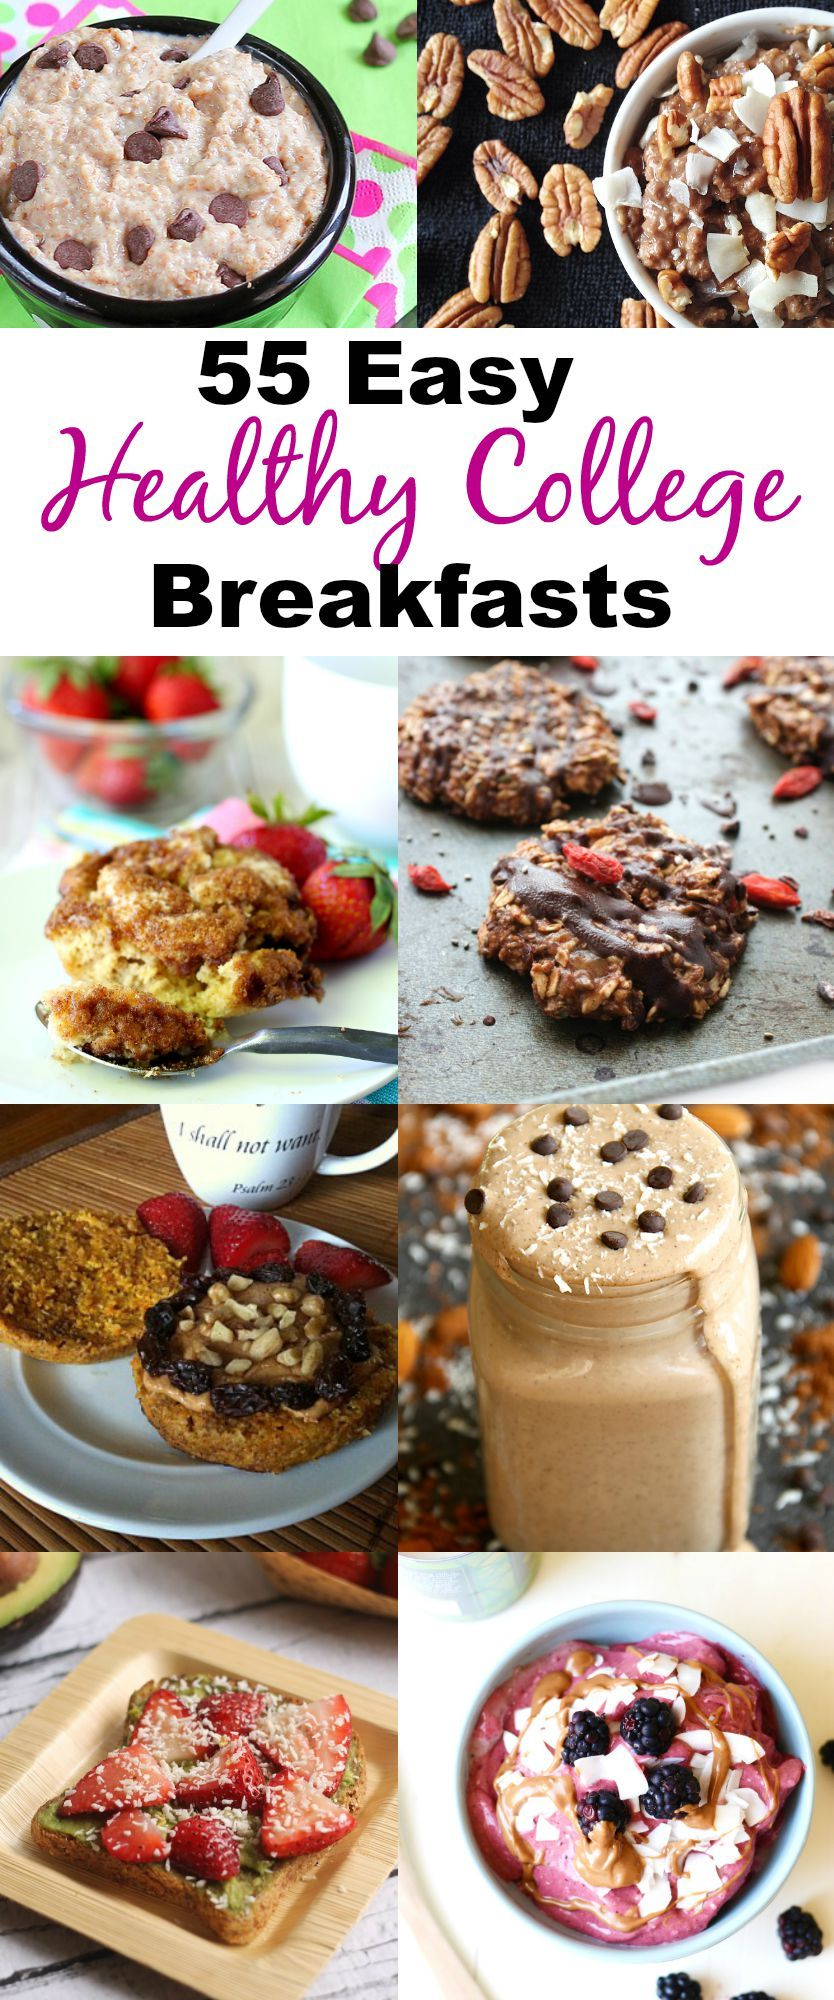 Healthy Brunch Options Eating Out